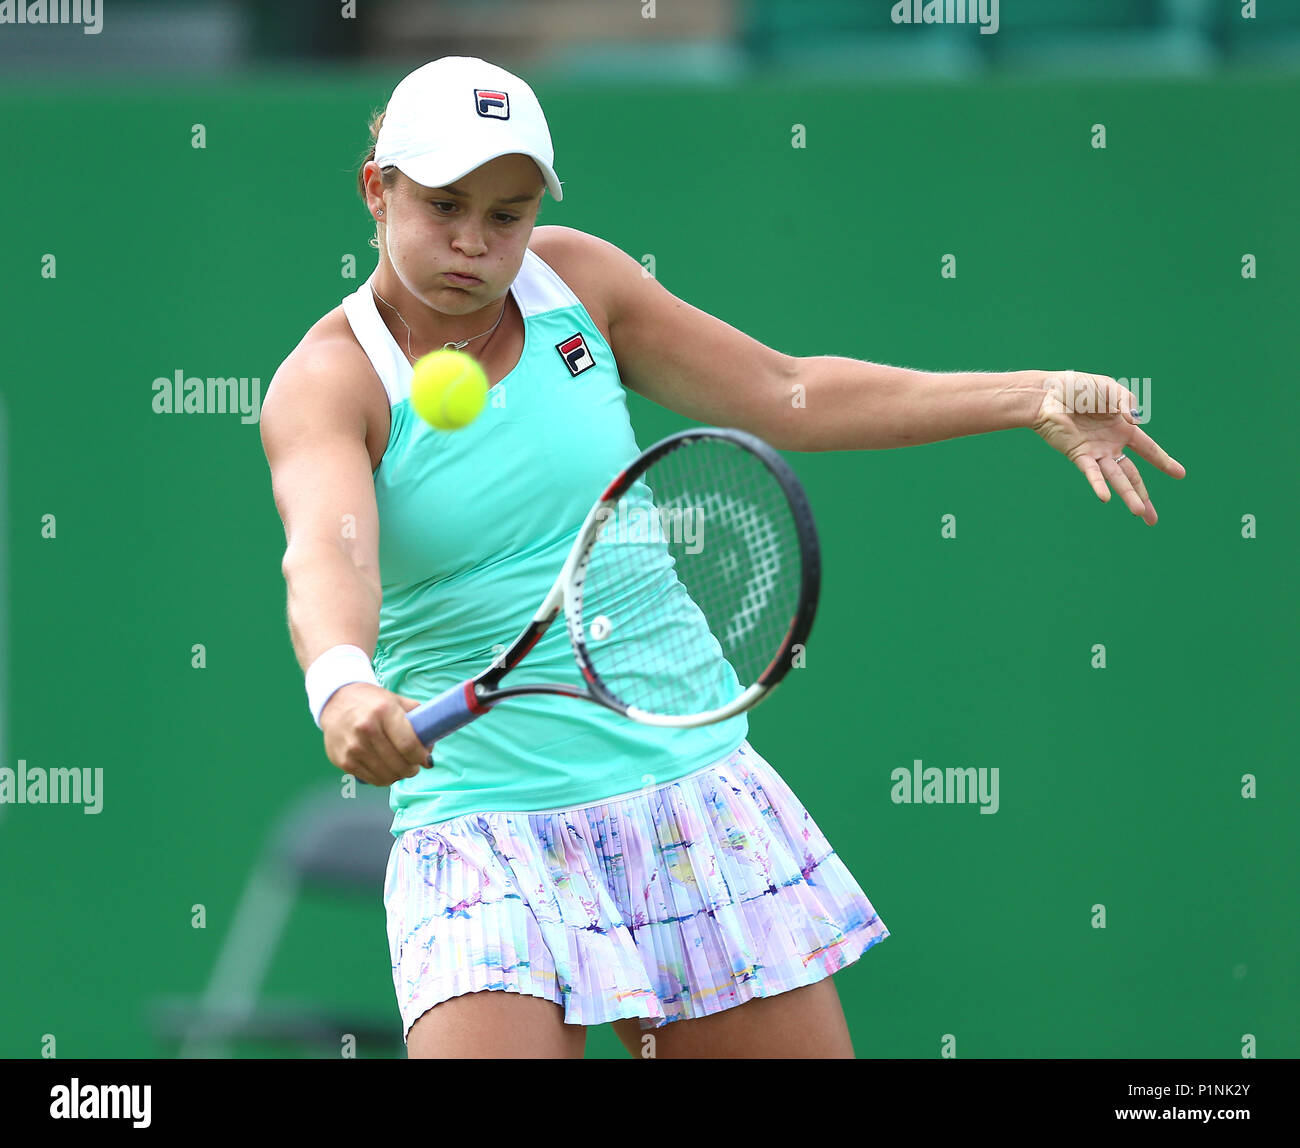 Ashleigh Barty: Nottingham Press Association Picture Date Stock Photos